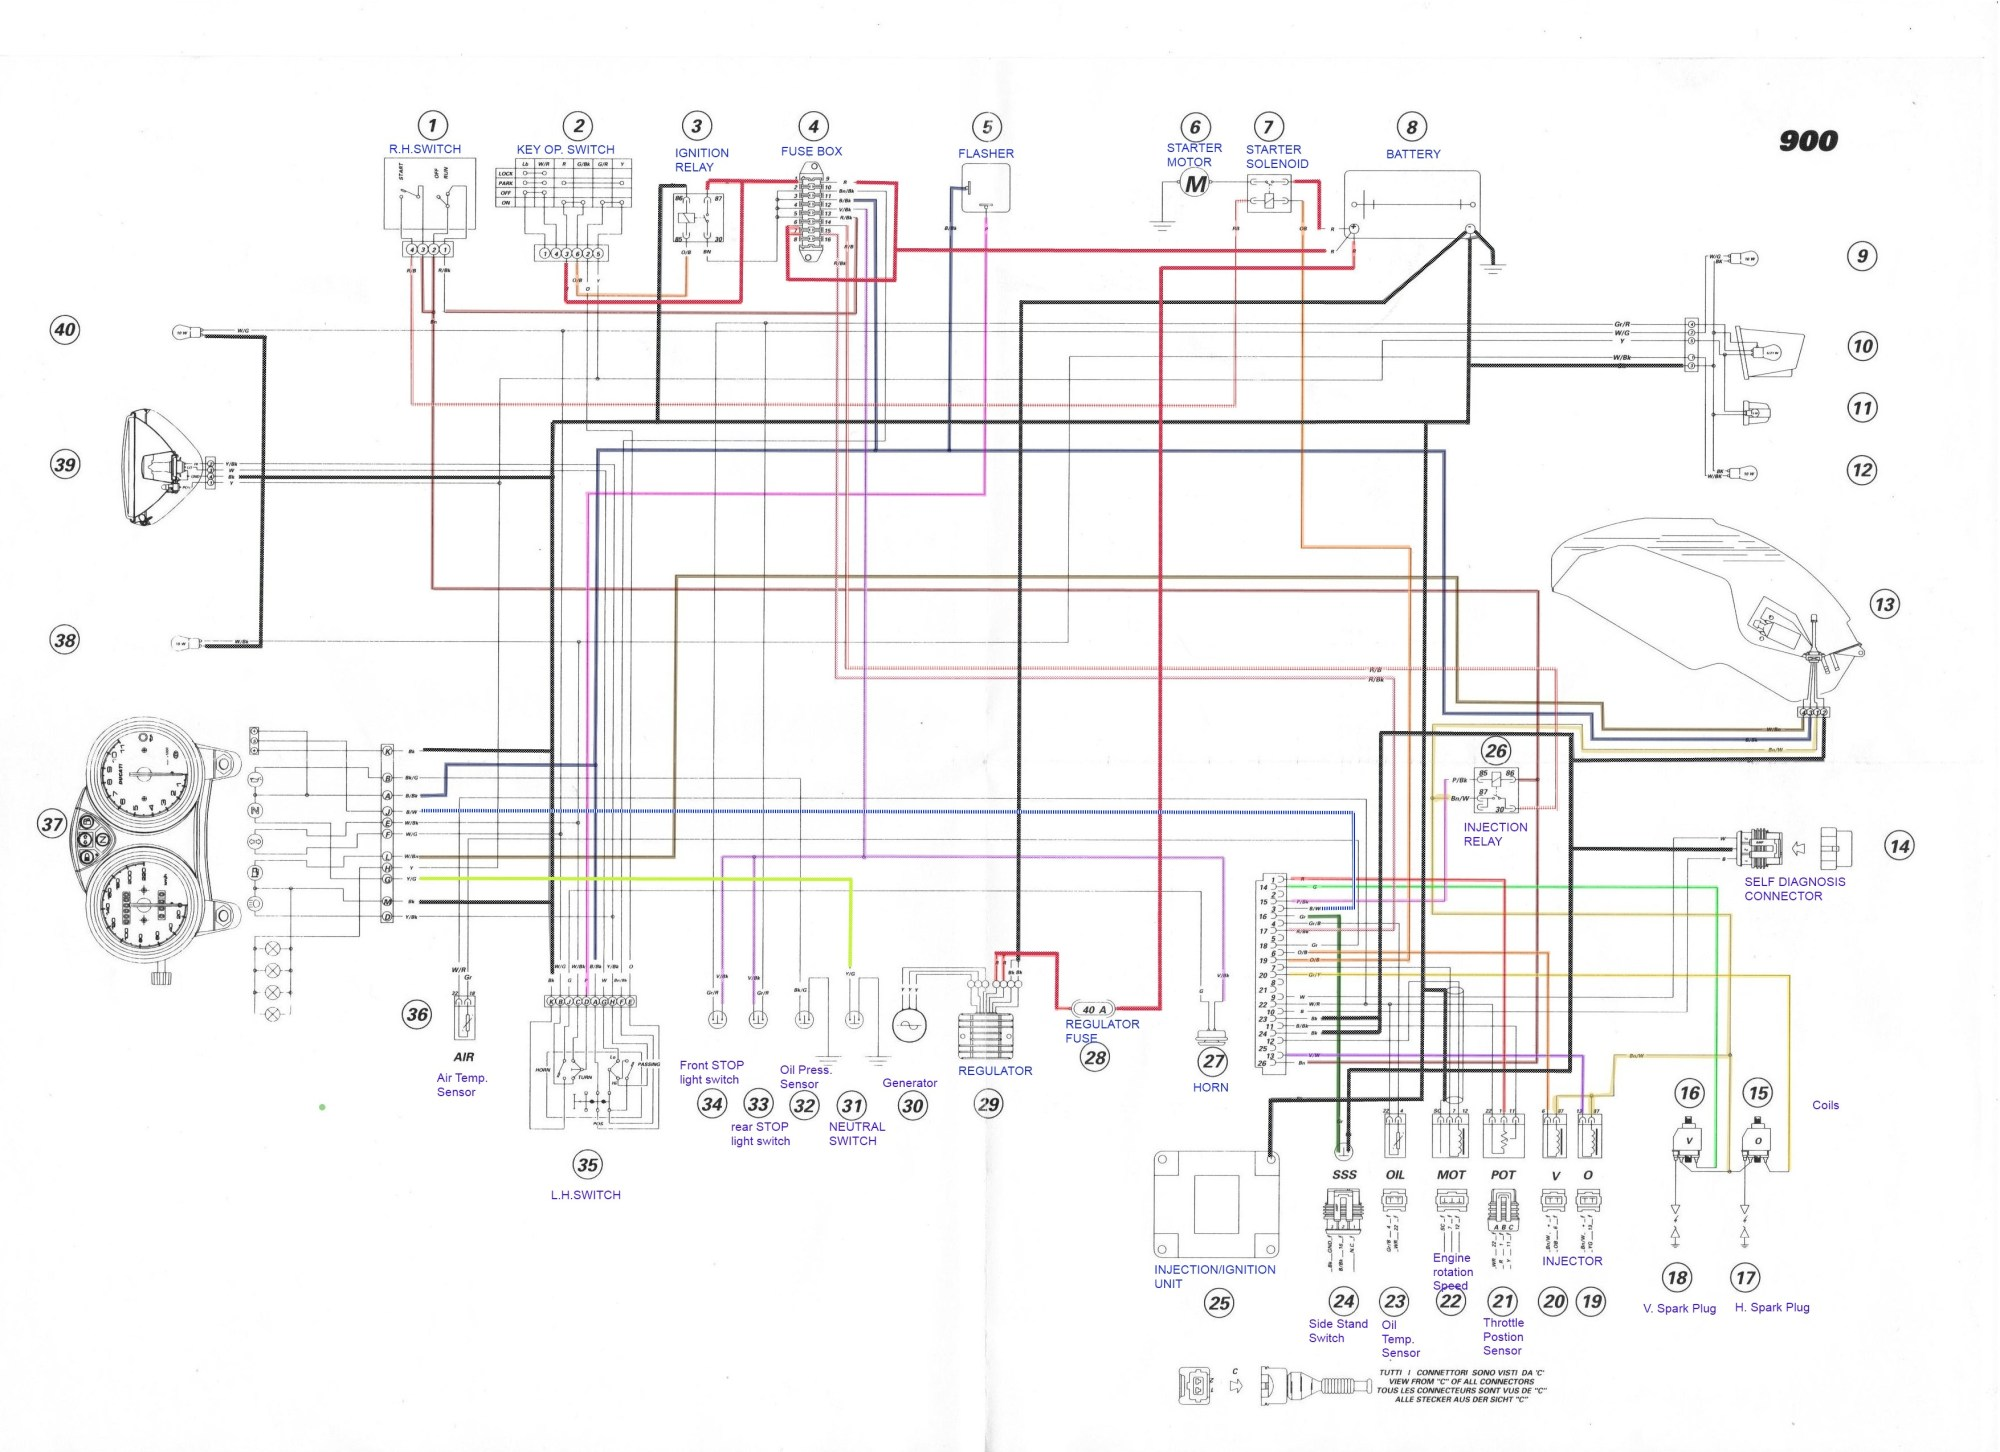 hight resolution of wiring diagram 2002 ducati enthusiast wiring diagrams u2022 rh rasalibre co 2003 suzuki vl800 wiring diagram